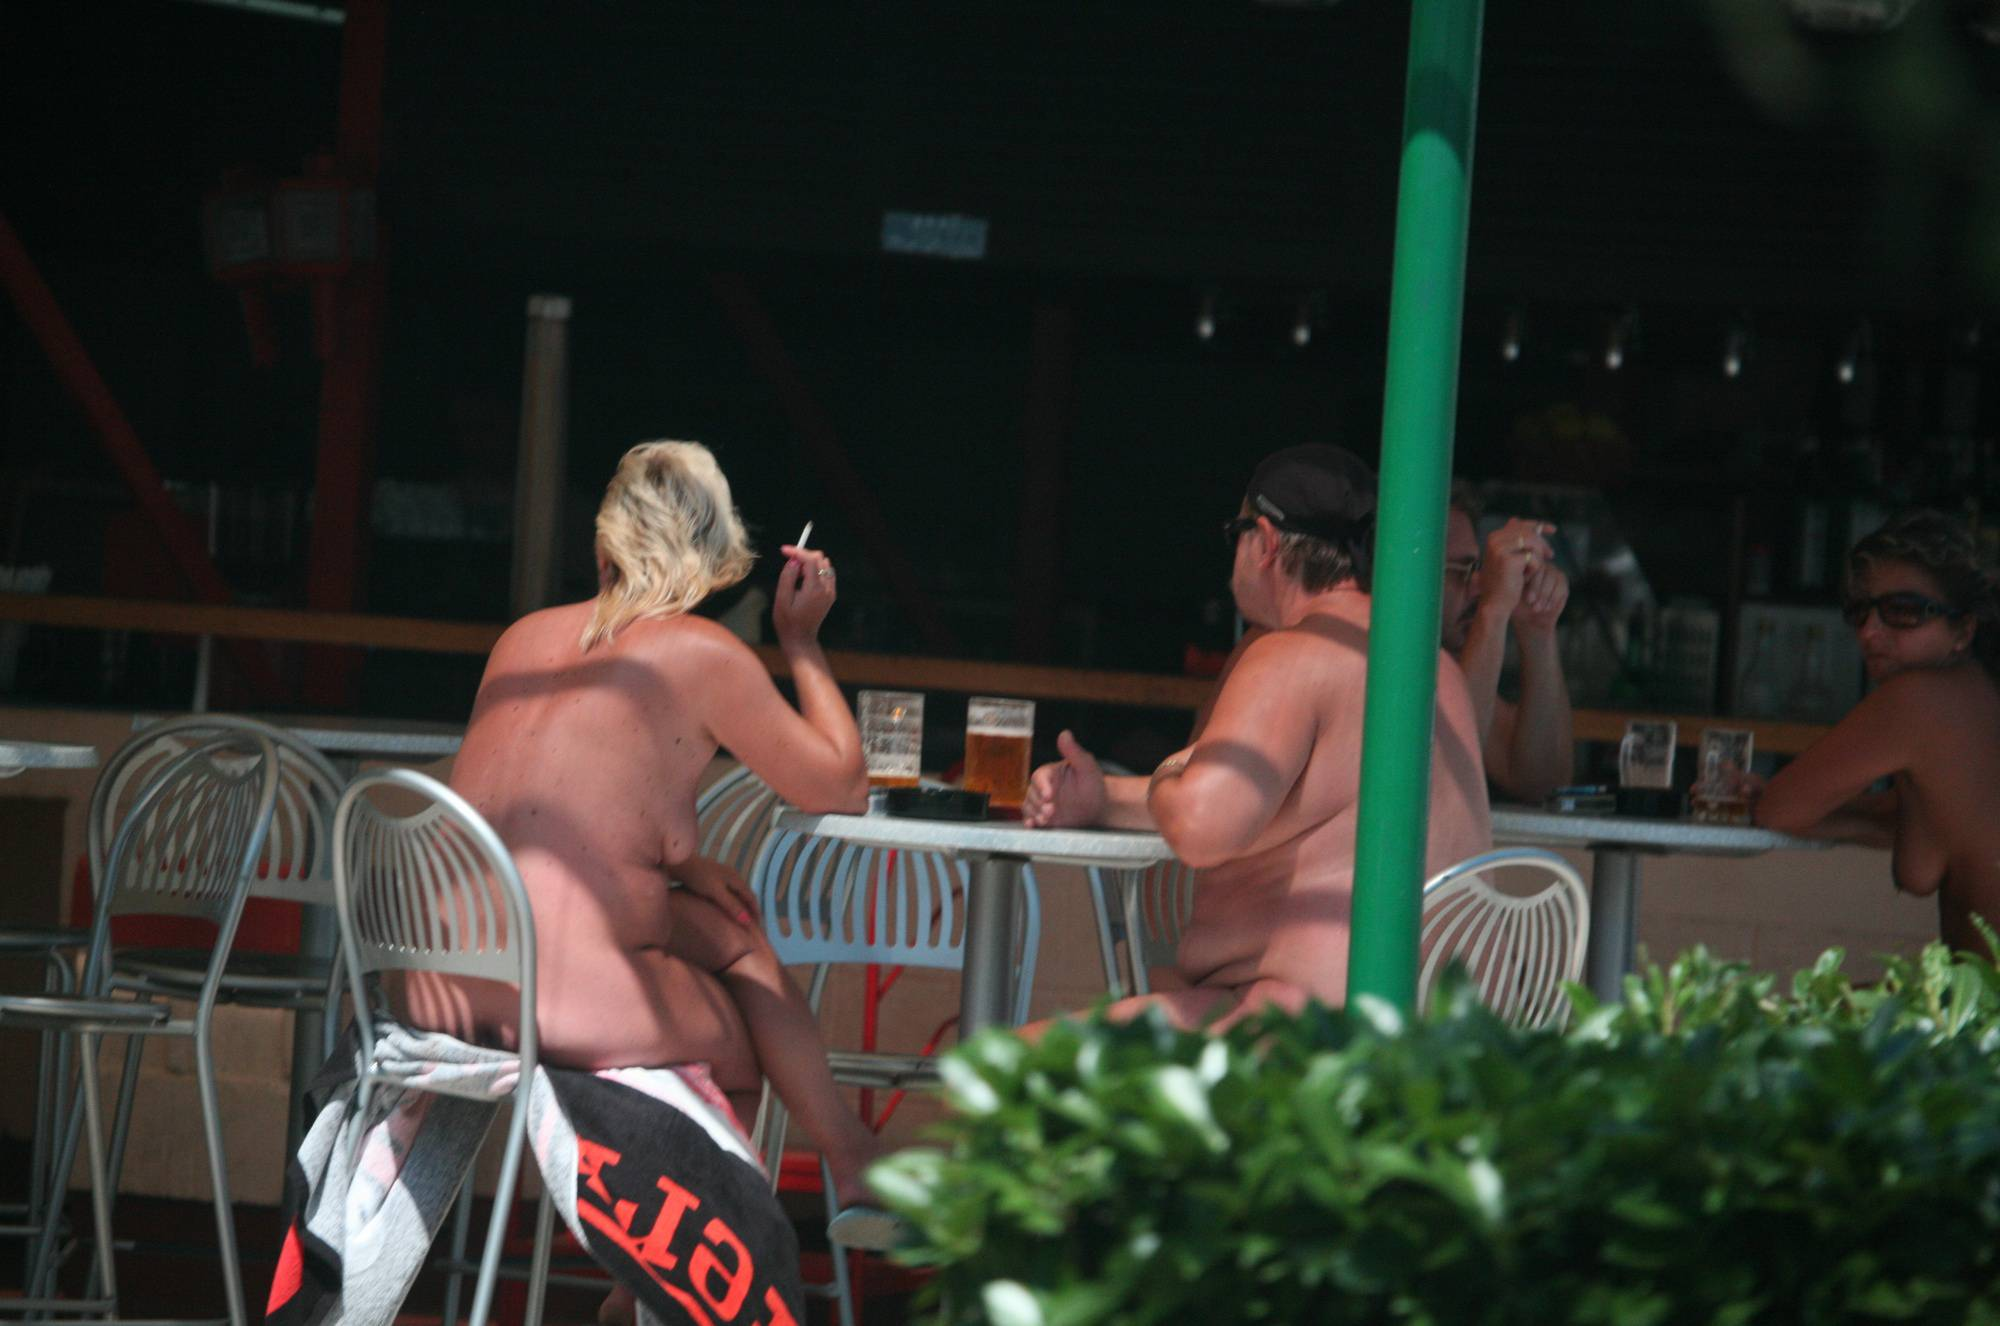 Nudist Pics Nora FKK Outdoor Dinning - 2